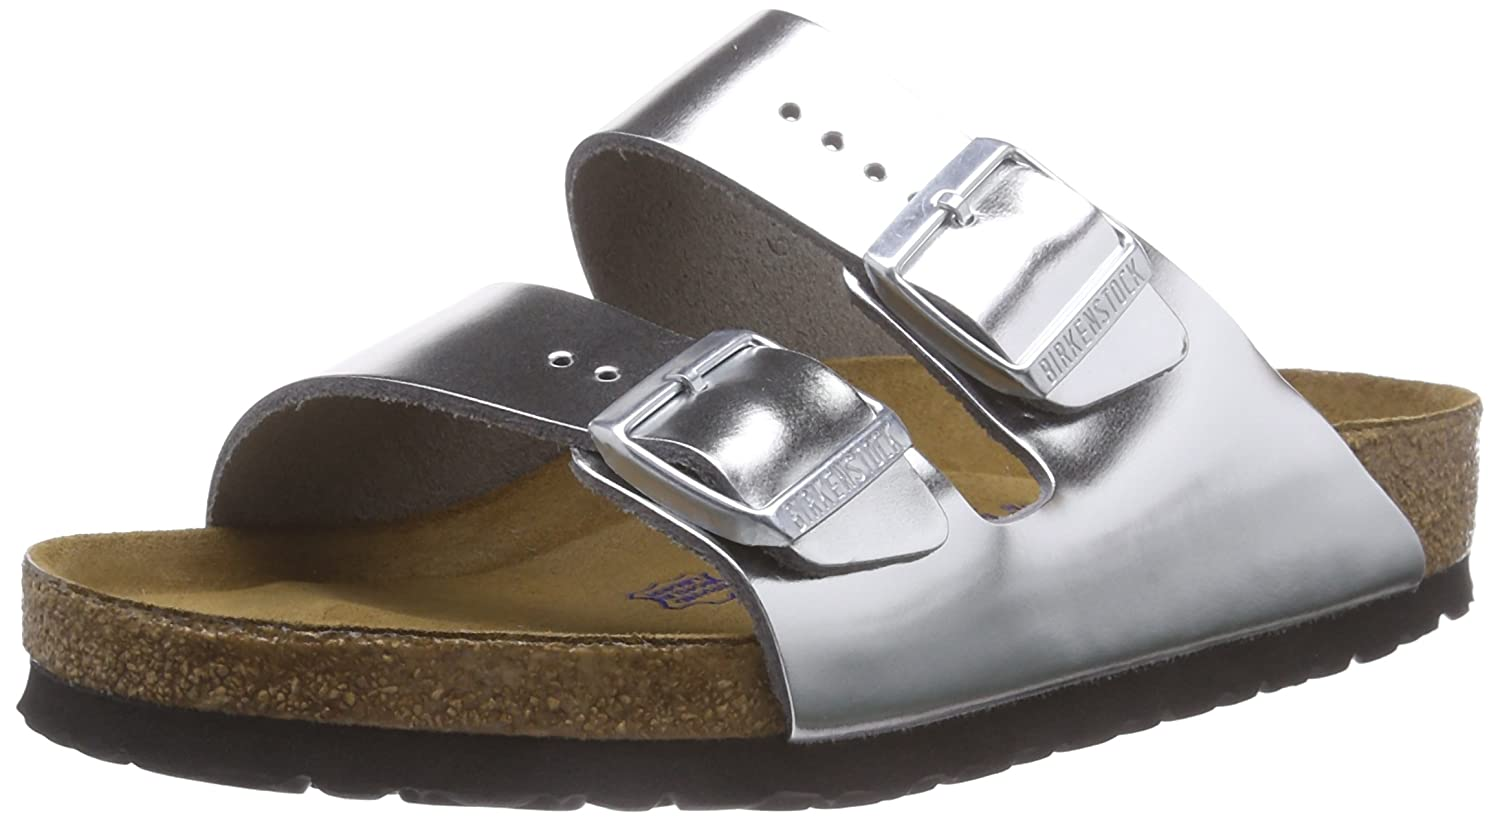 Birkenstock Arizona Soft Footbed Leather Sandal B079K4Y37K 41 N (US Men's 8-8.5 / US Women's 10-10.5)|Metallic Silver Sfb Leather